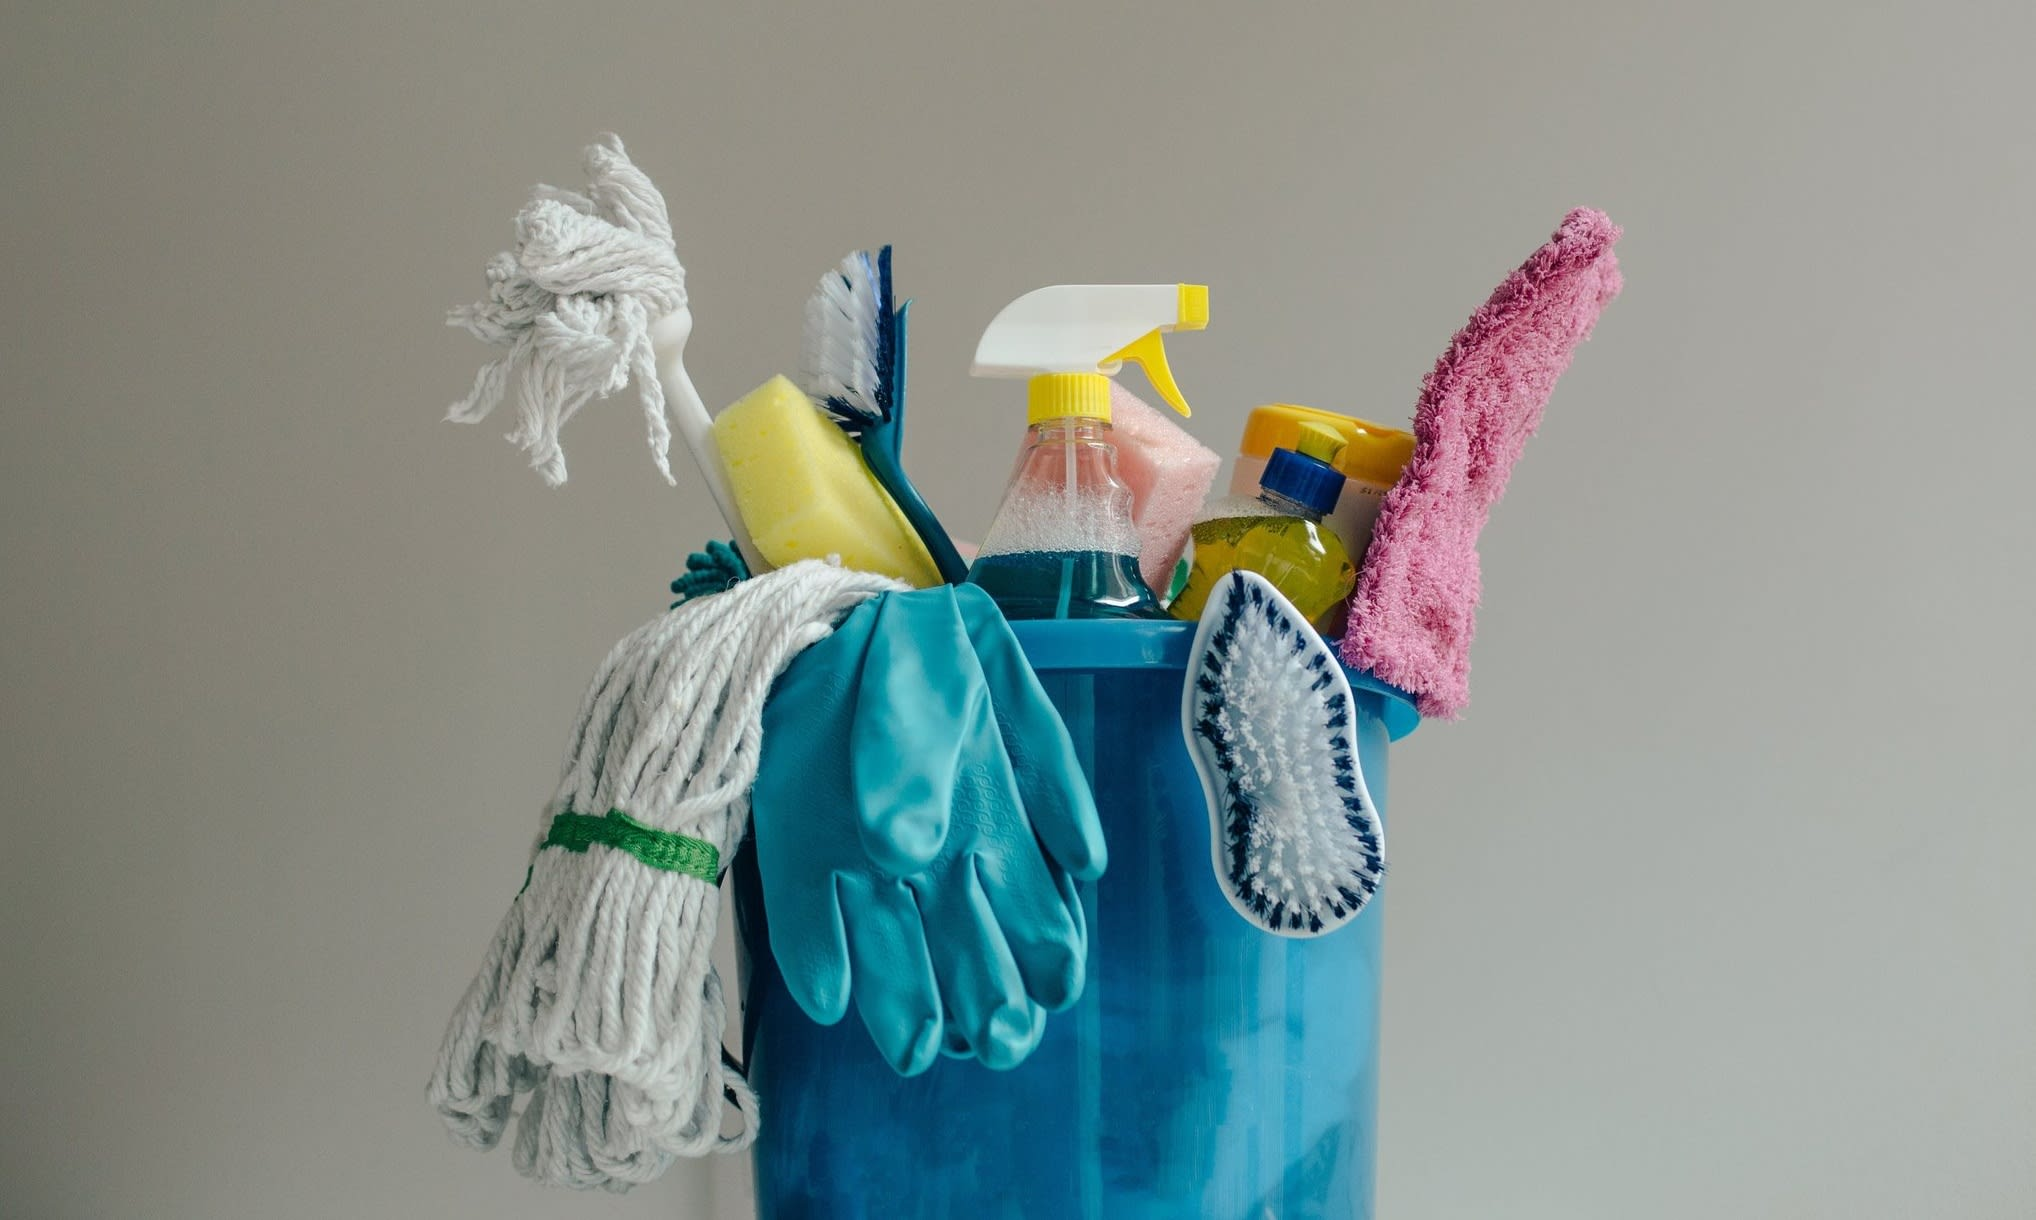 Home Cleaning Services: Here Are Your Options